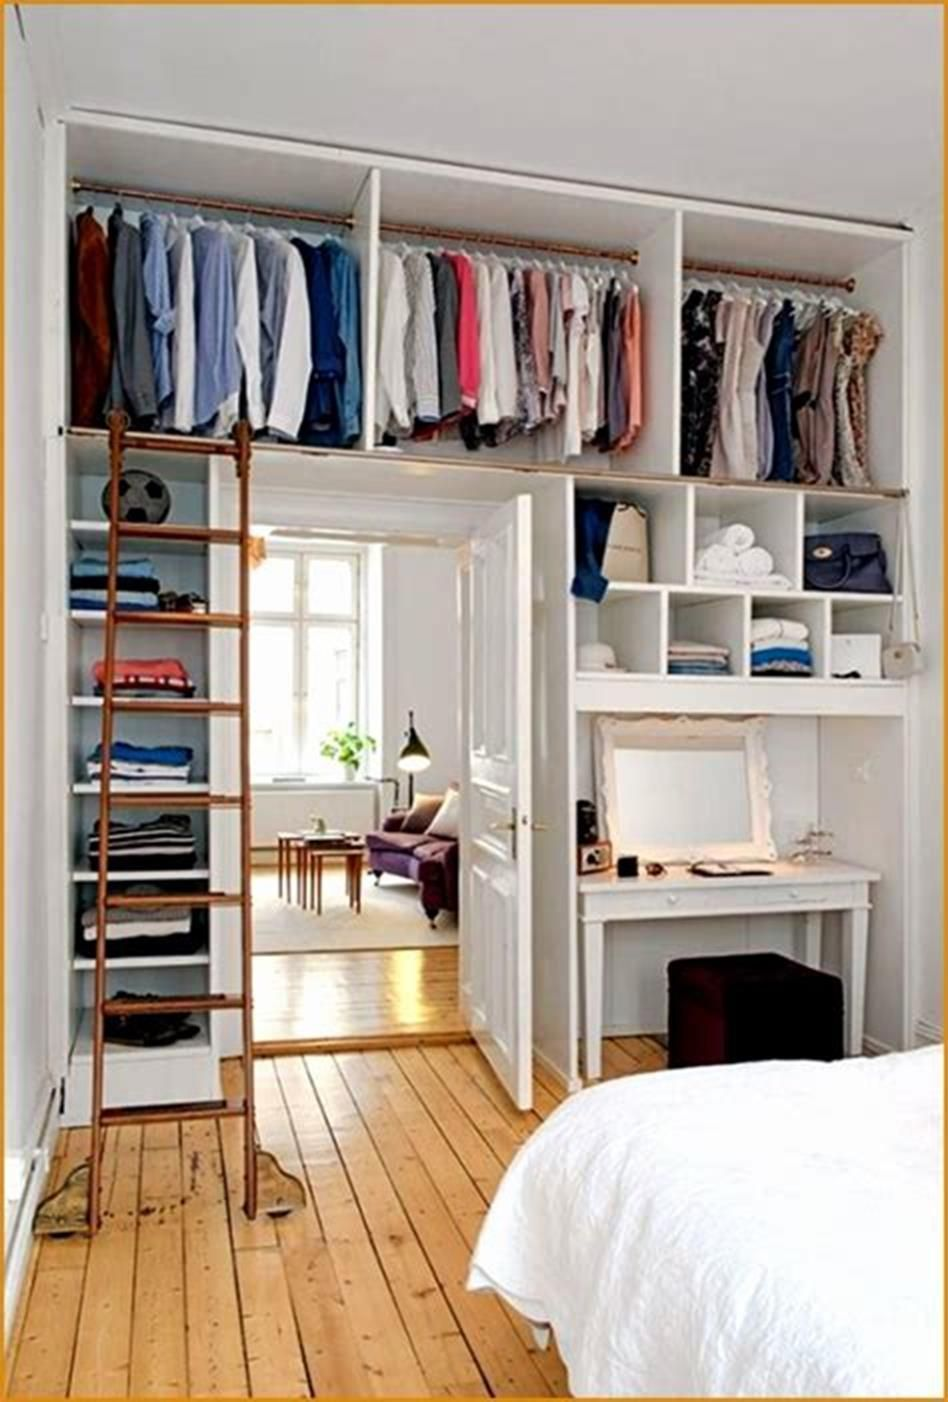 Best 45 Storage Ideas For Small Bedrooms On A Budget Comedecor Minimalist Bedroom Design Small Bedroom Designs Minimalist Bedroom